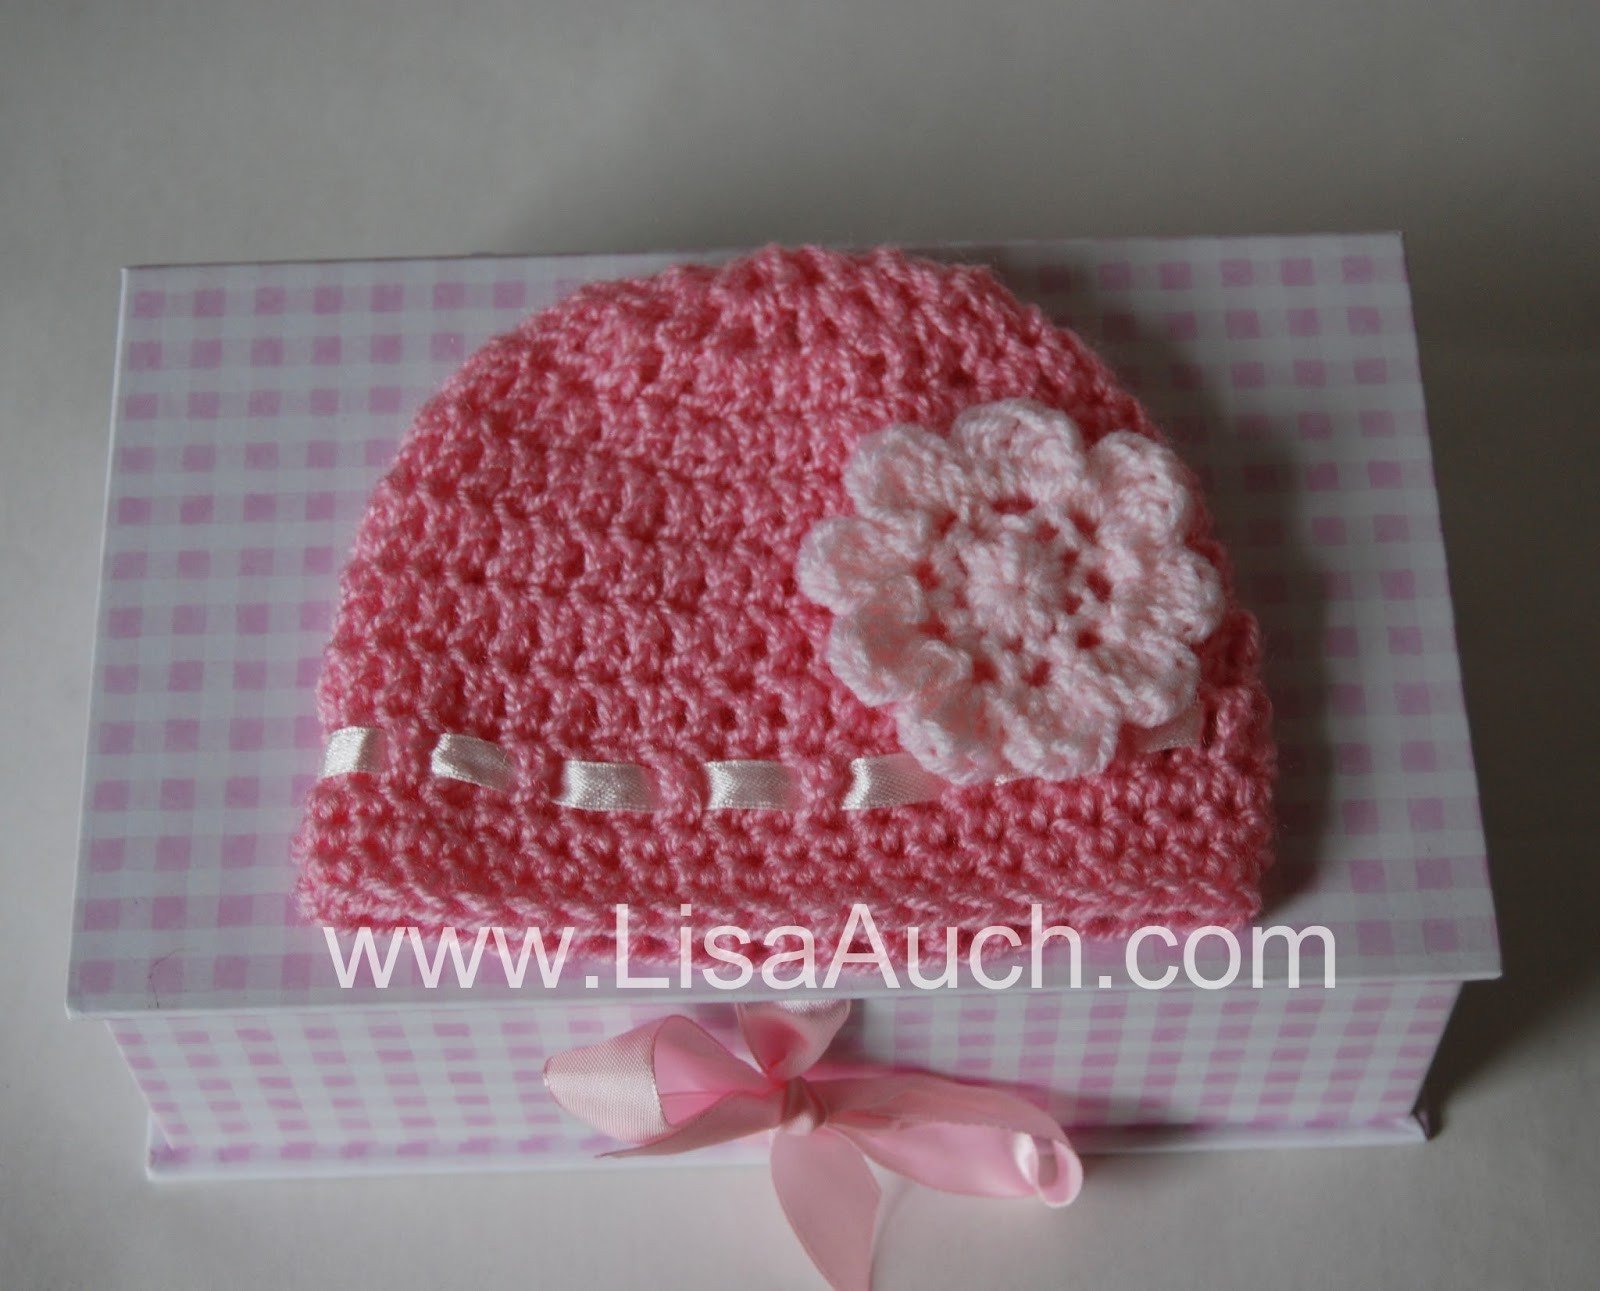 Free Crochet Patterns For A Baby Blanket : Free Crochet Baby Hat Pattern